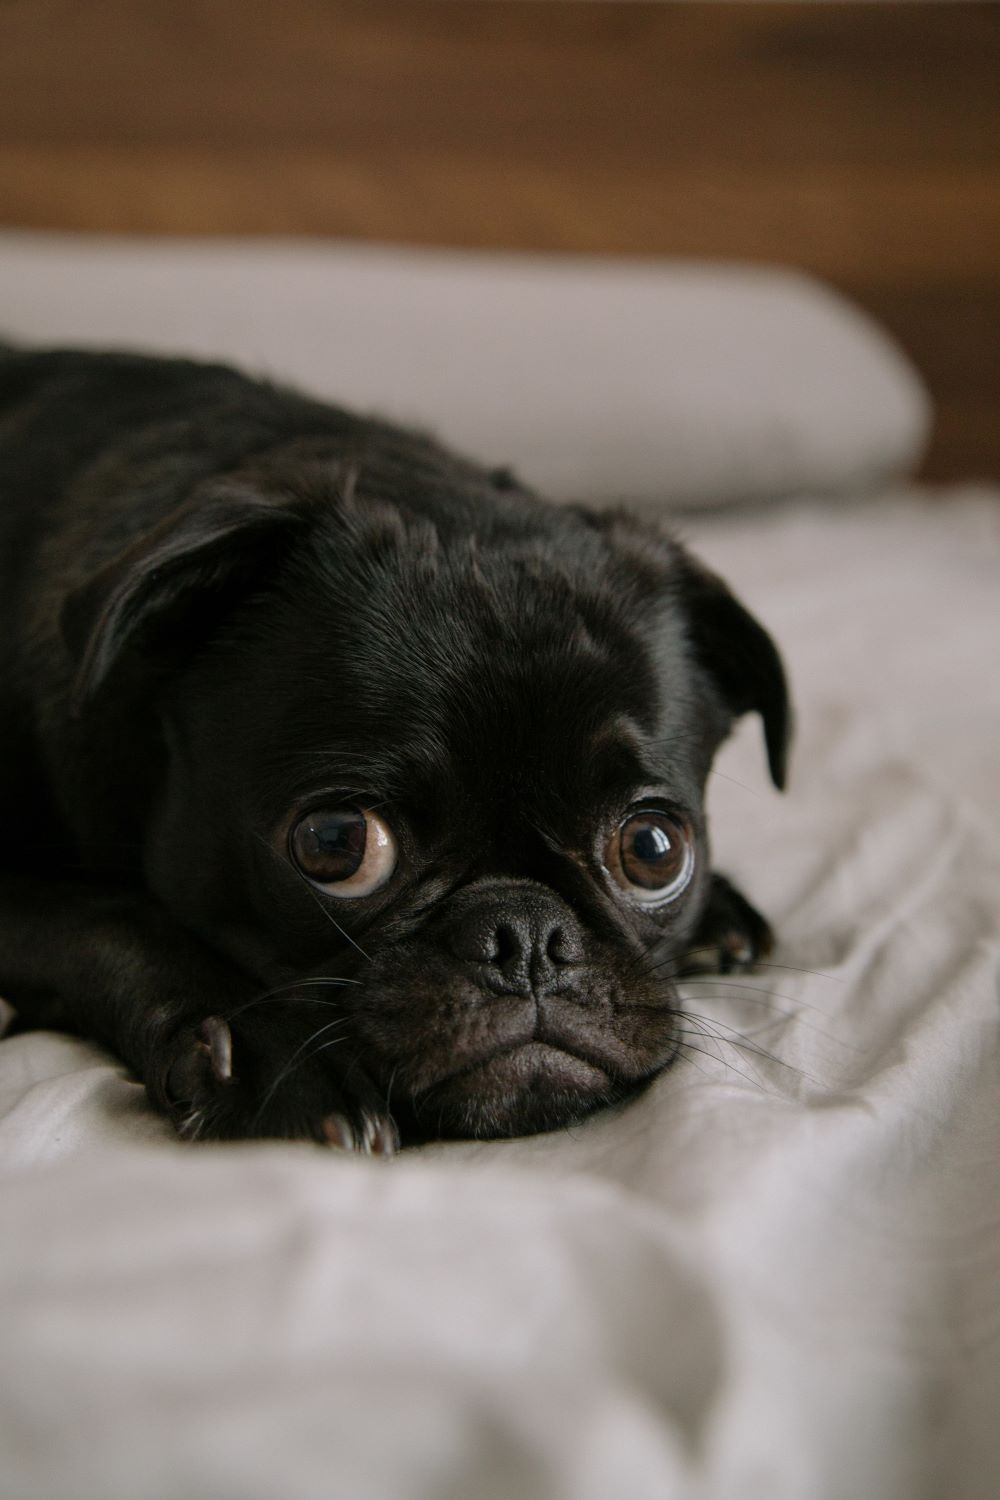 Anti-Diarrhea Treatment For Dogs - Essential For A Happy and Healthy Pet - My Financial Hill